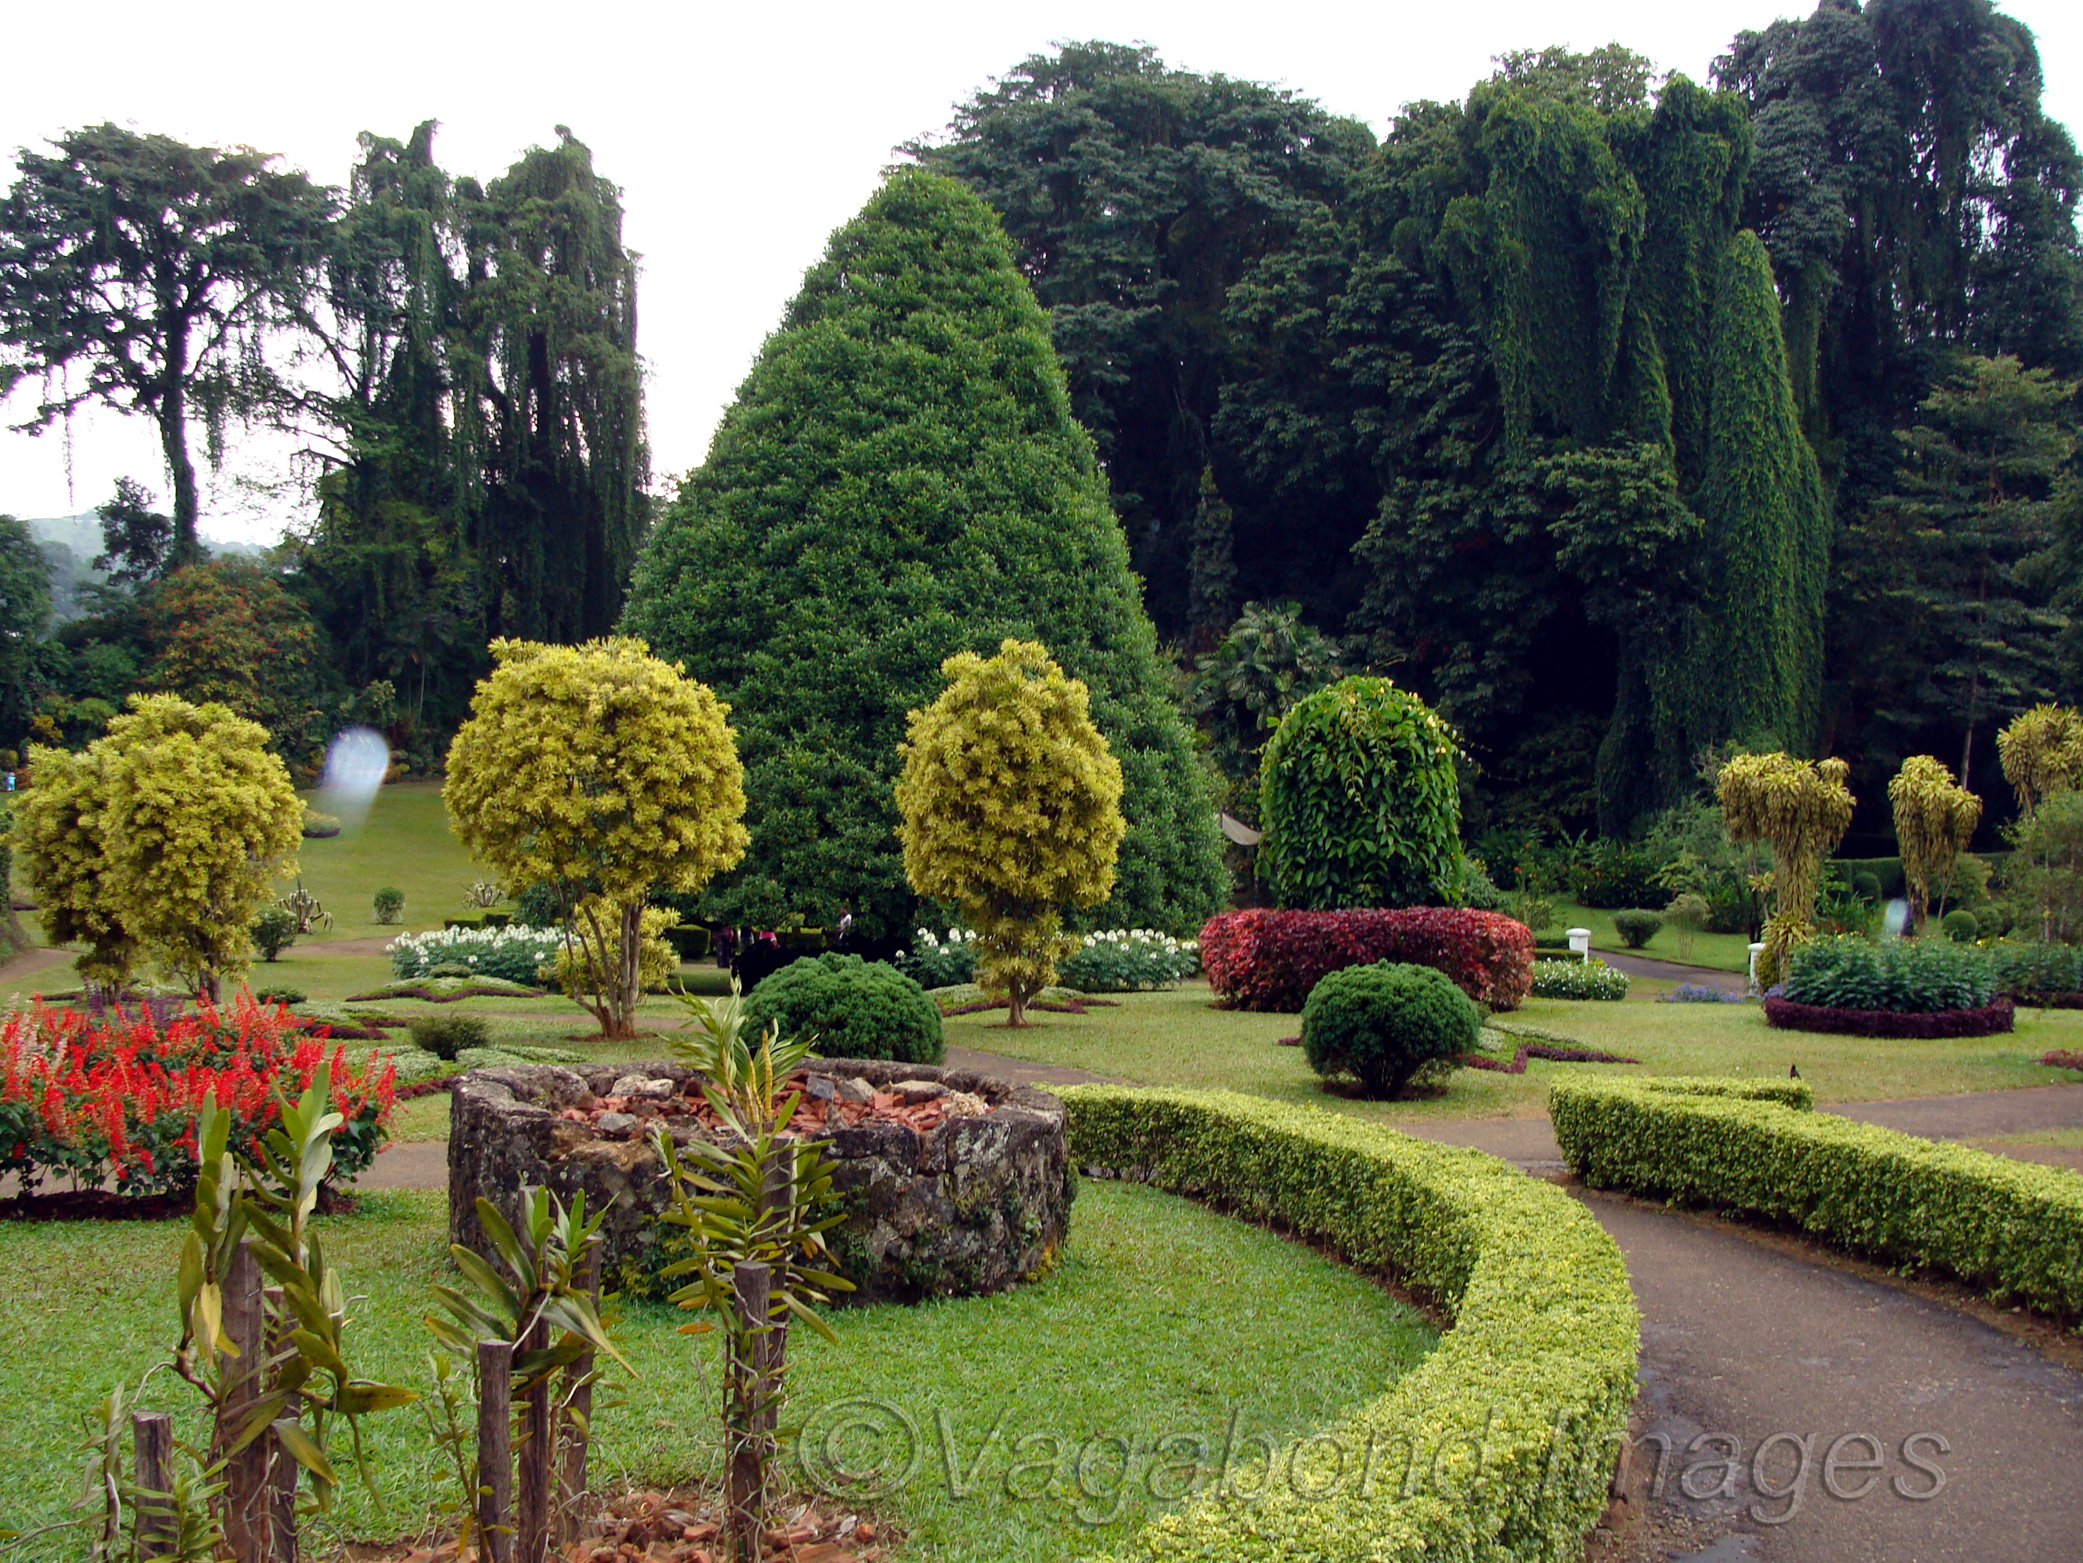 Beautiful setting with walkways and gardens